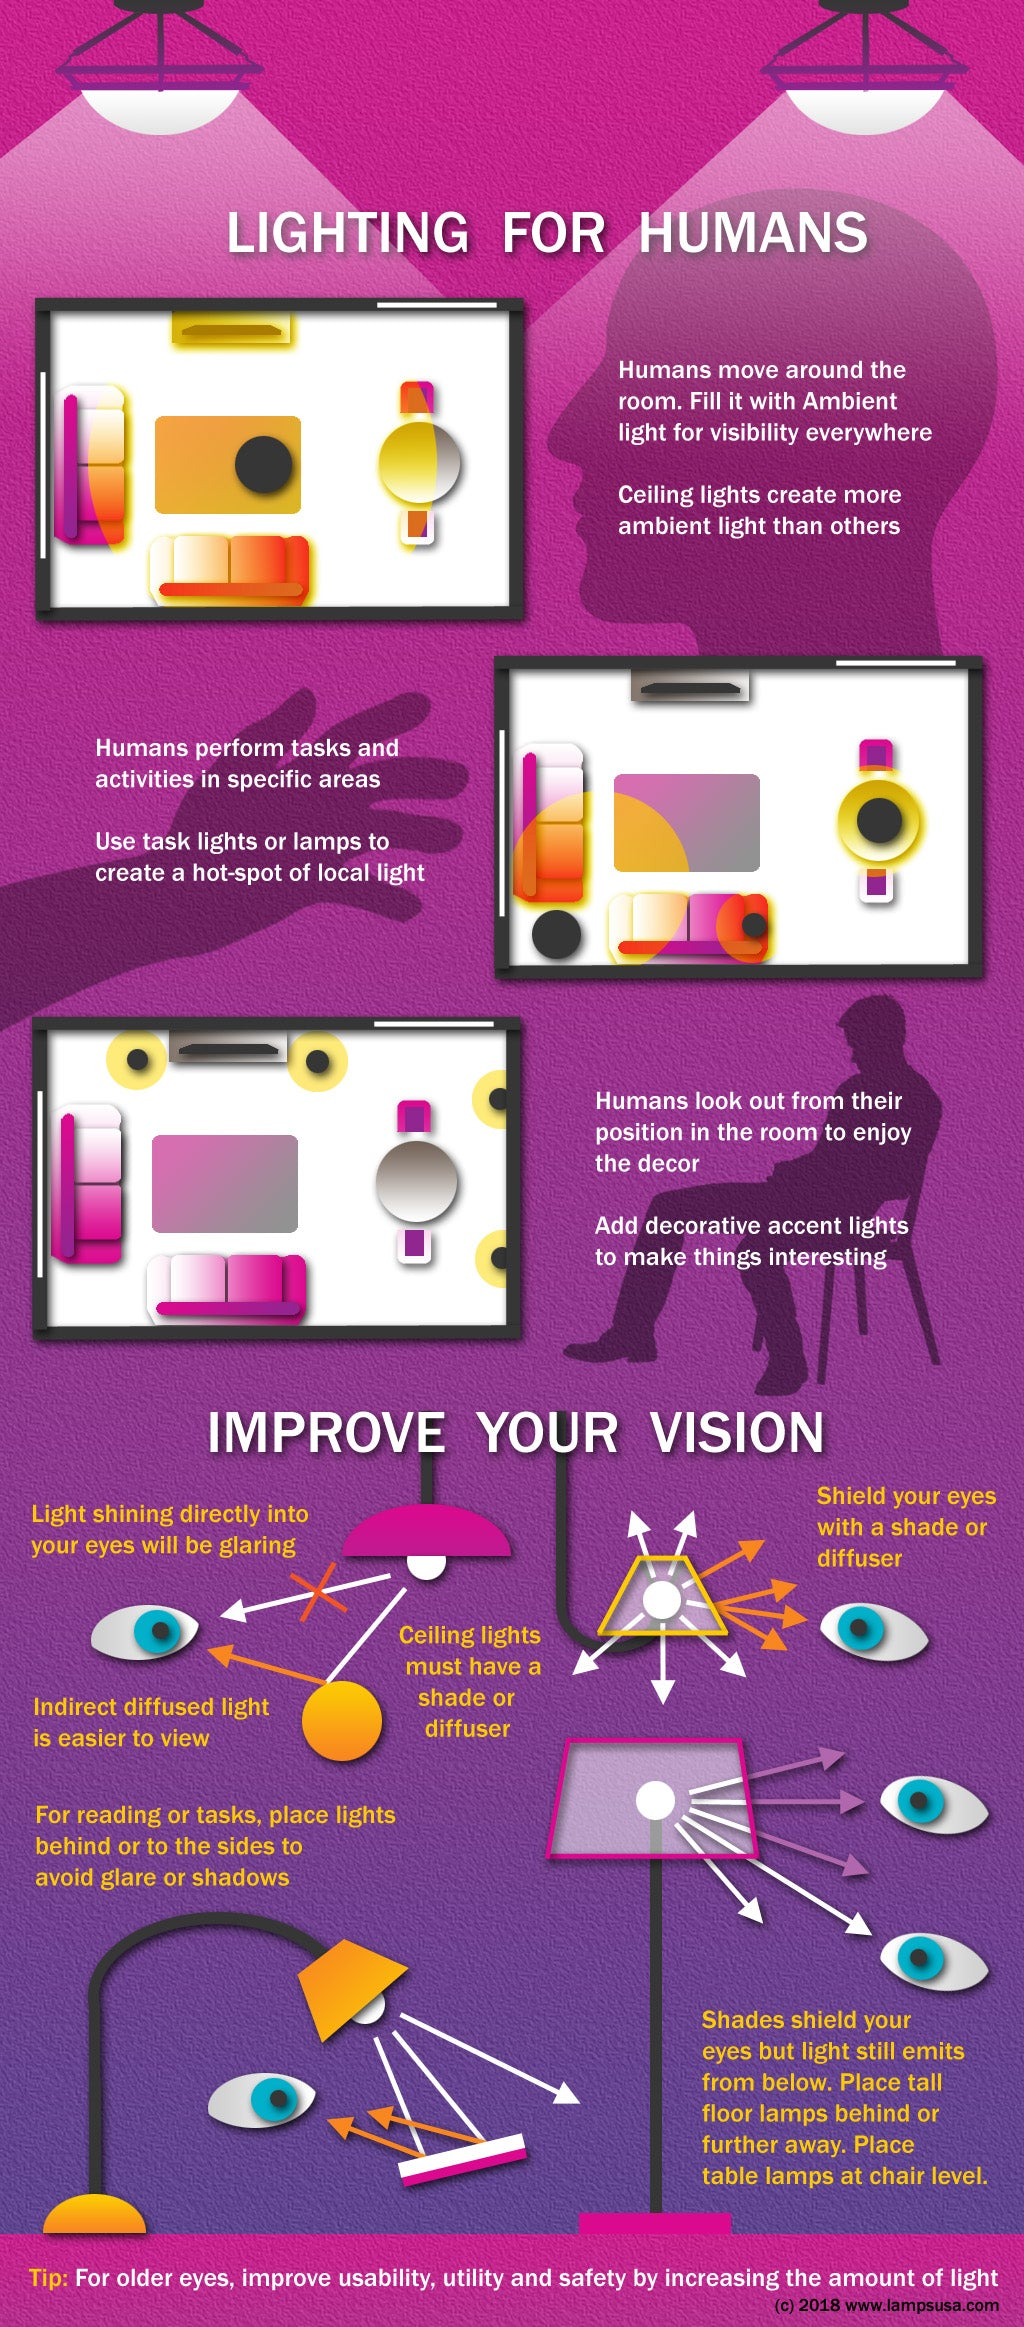 Lighting fixtures for humans improve your eyesight vision